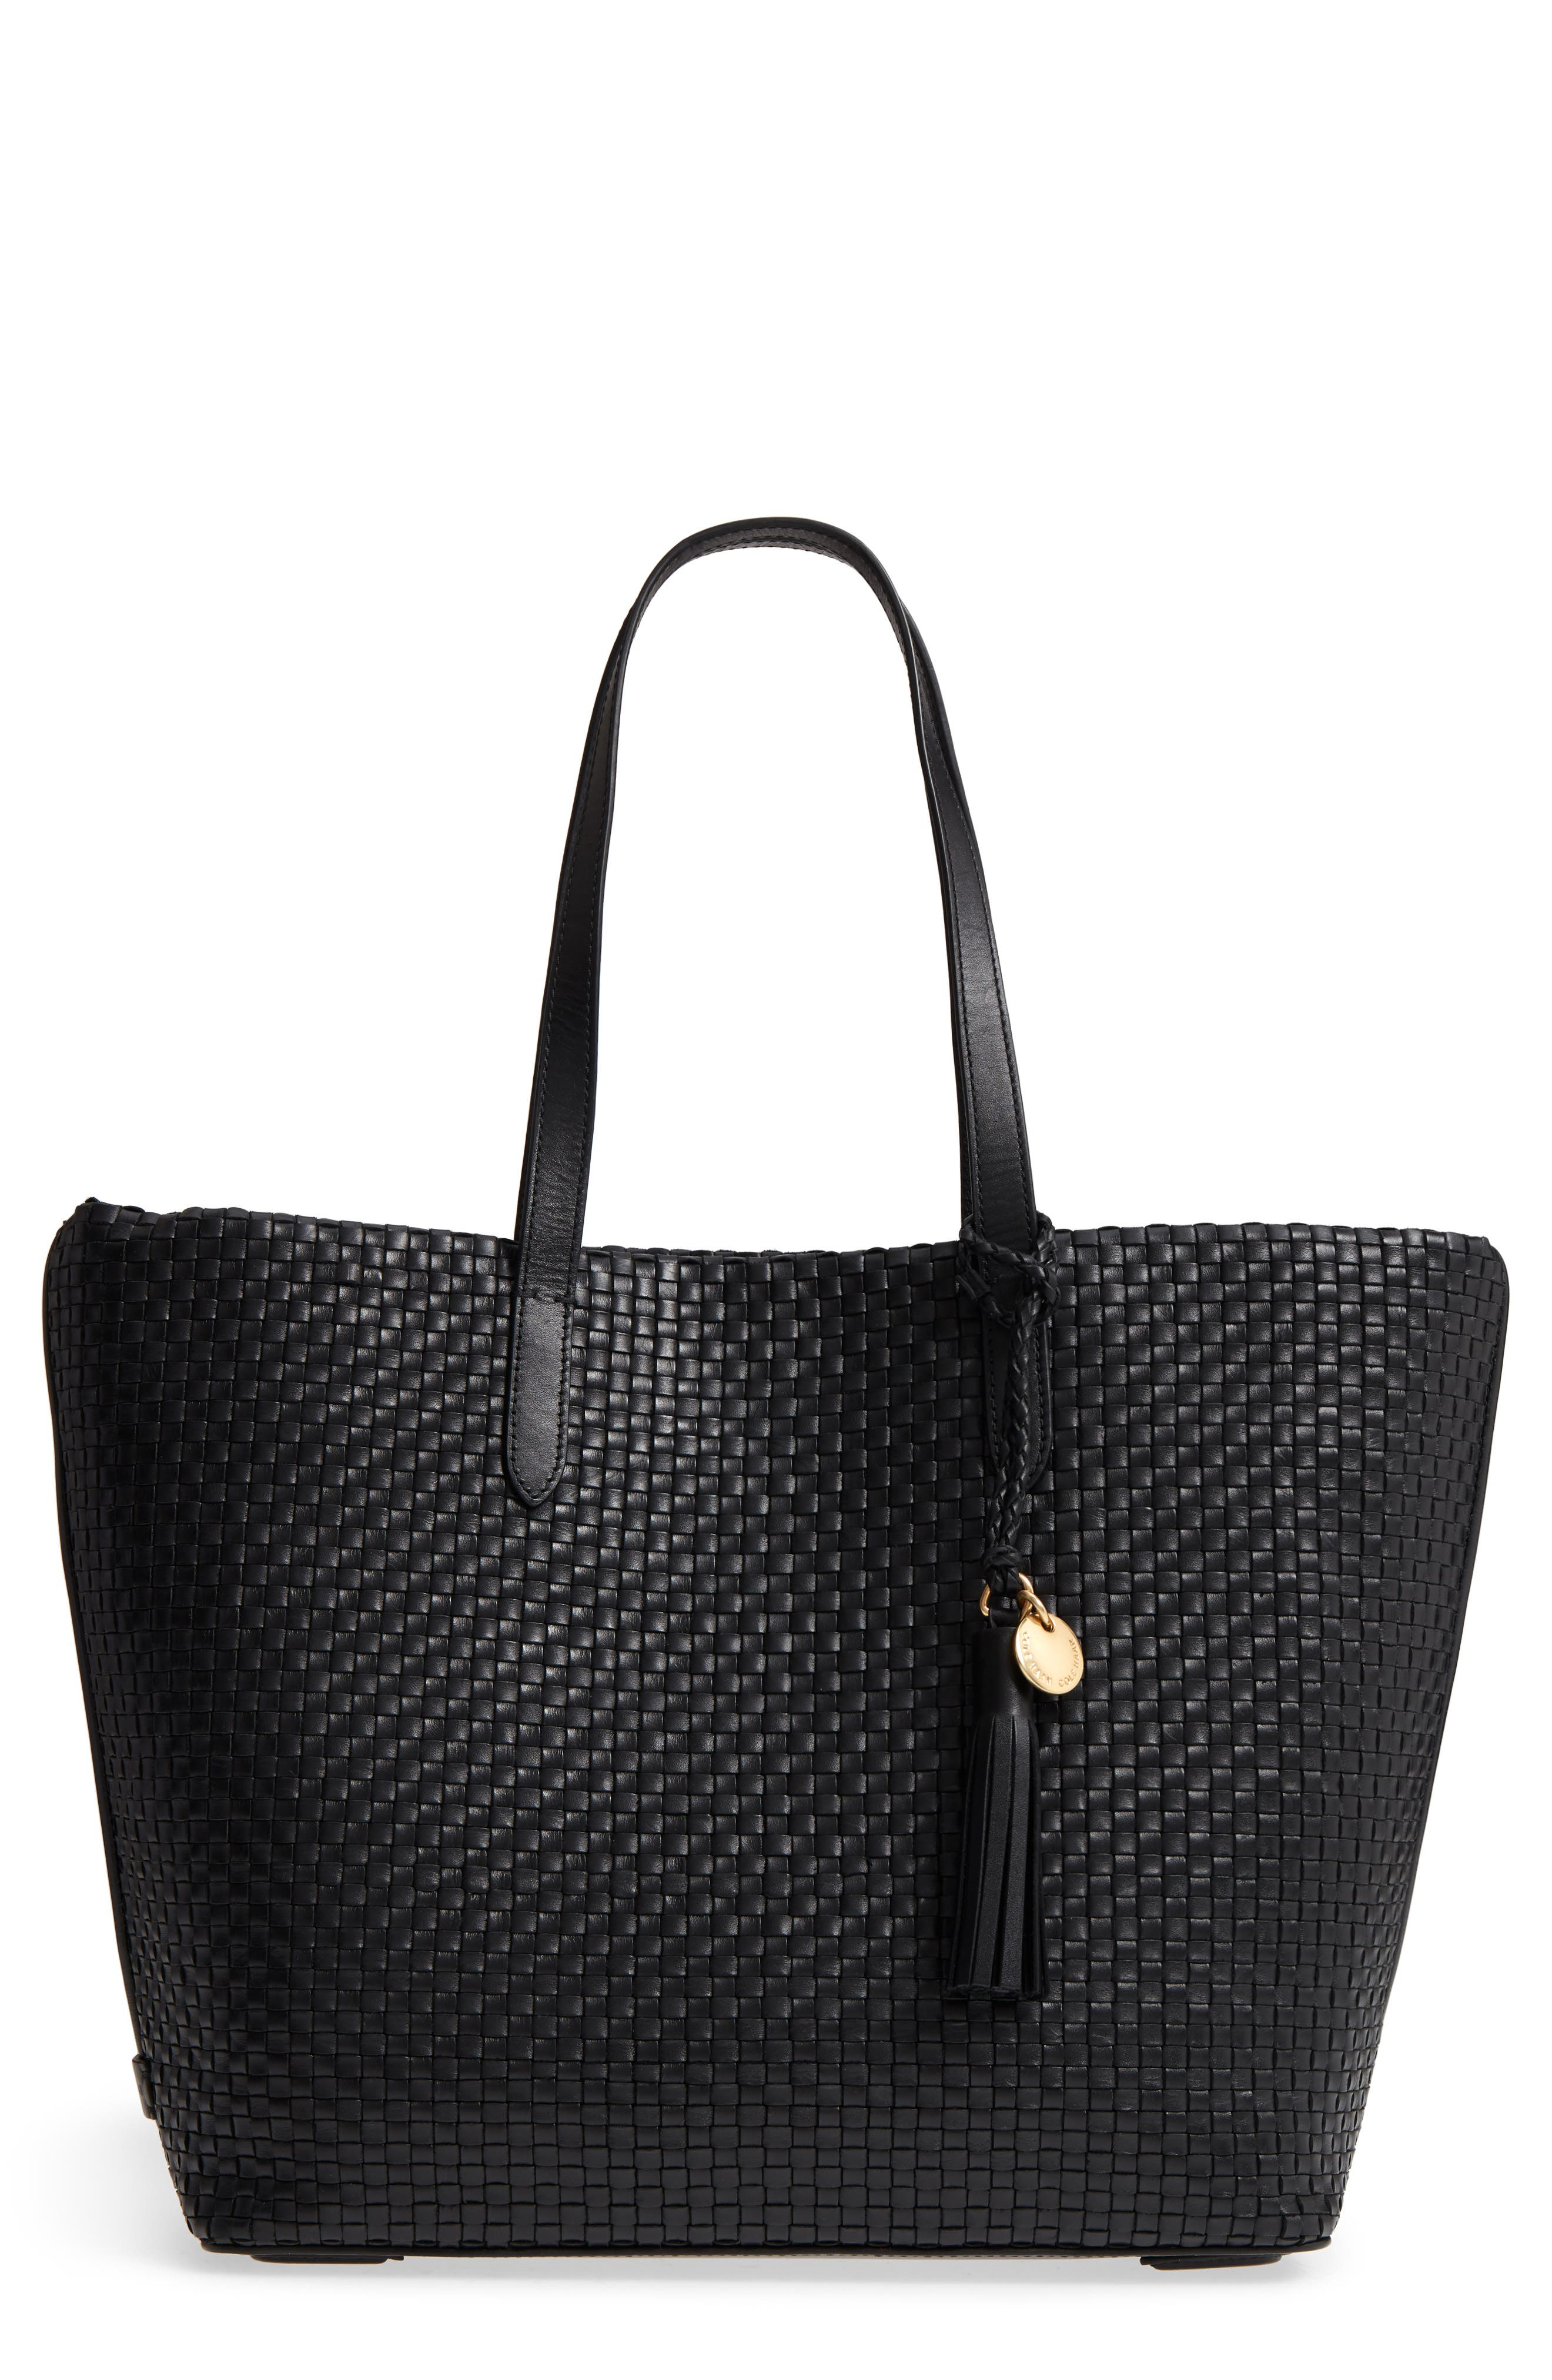 Payson RFID Woven Leather Tote,                             Main thumbnail 1, color,                             Black